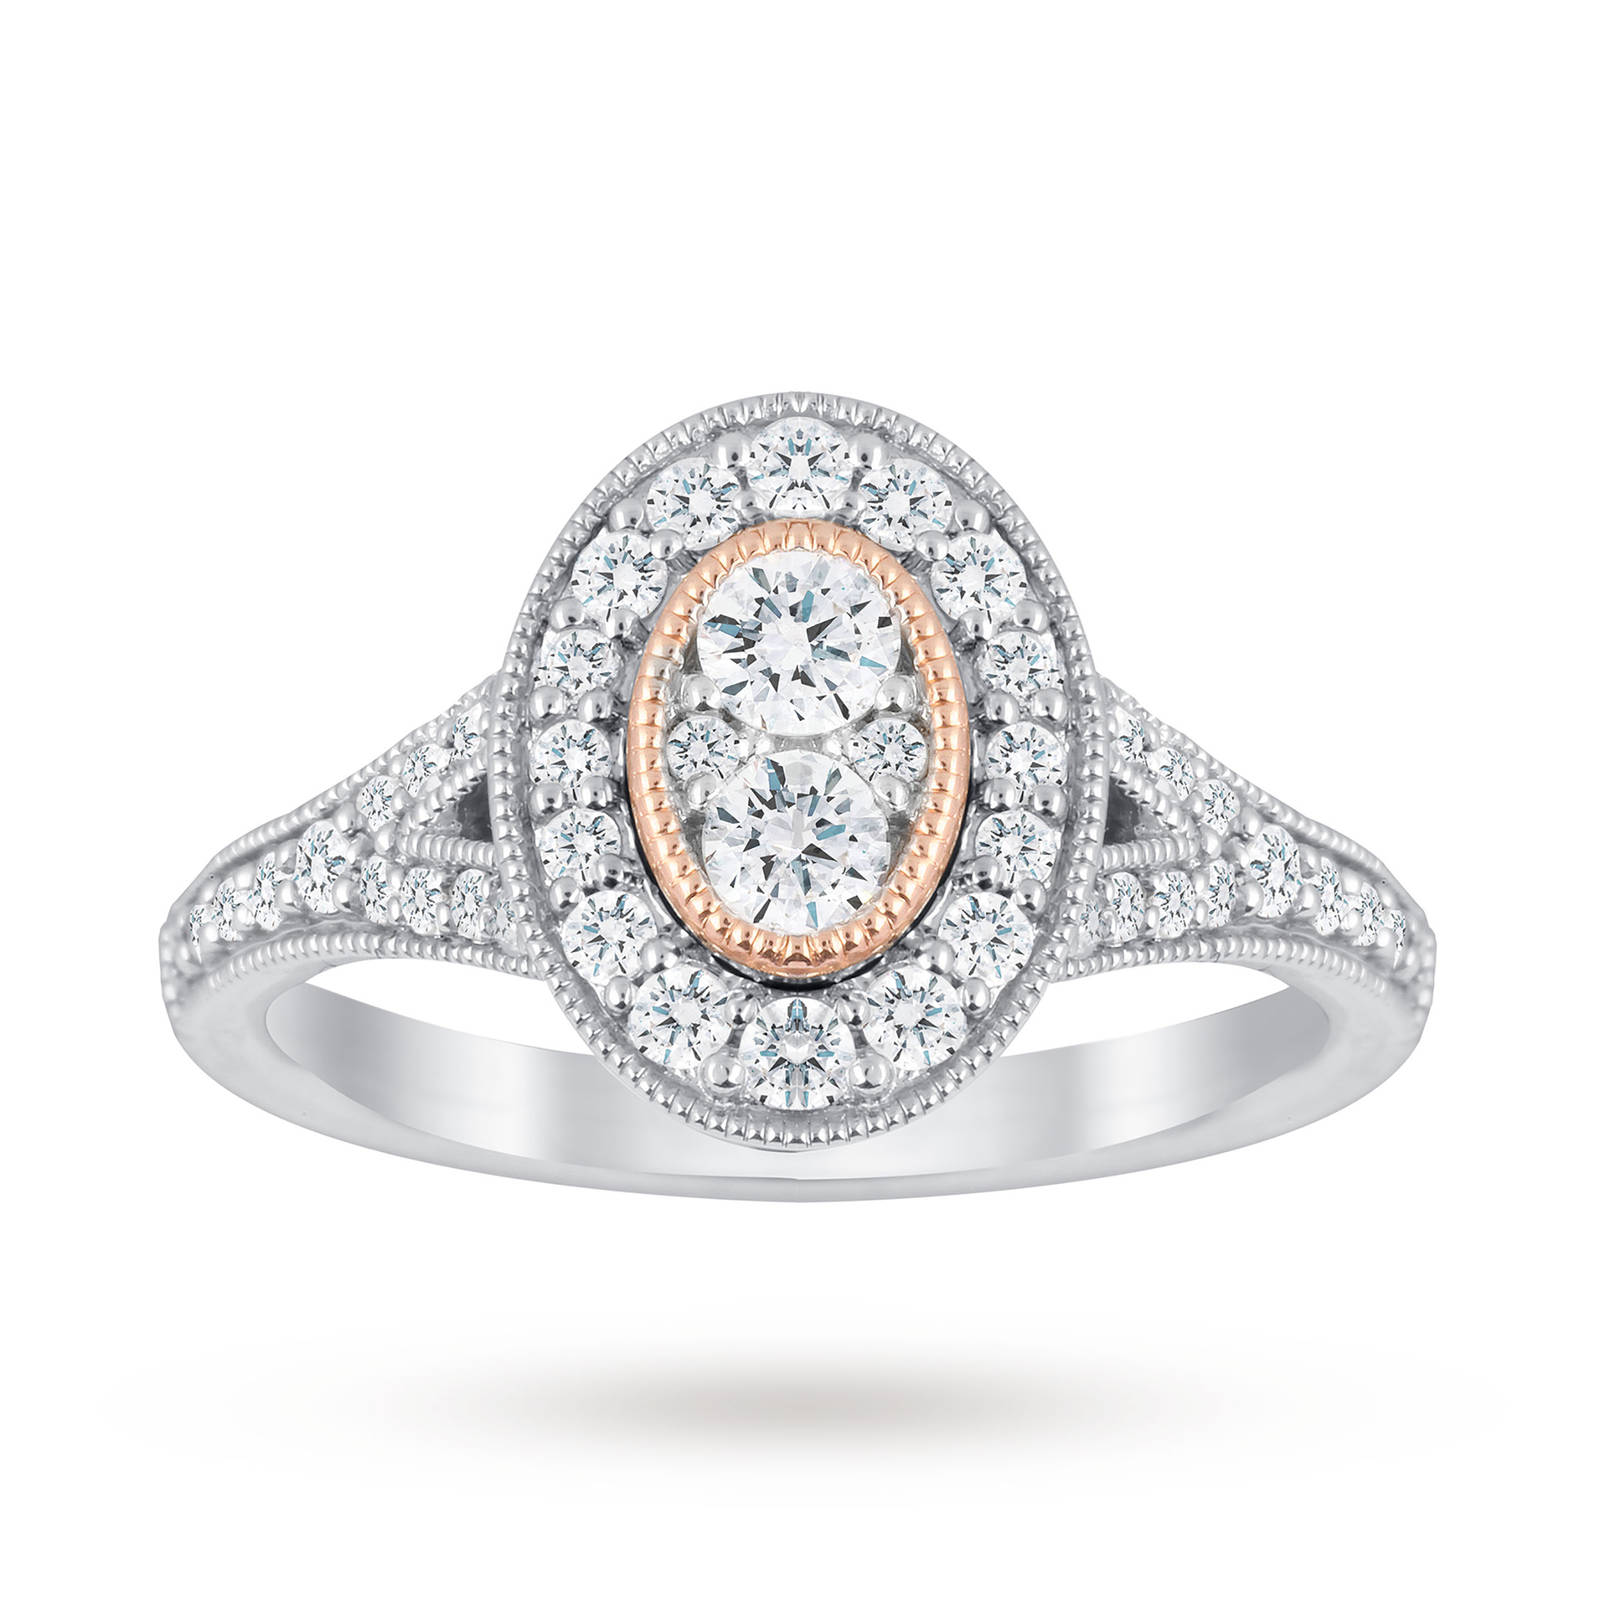 Jenny Packham Platinum 0.60 Carat Diamond Oval Ring With Rose Gold Milgrain